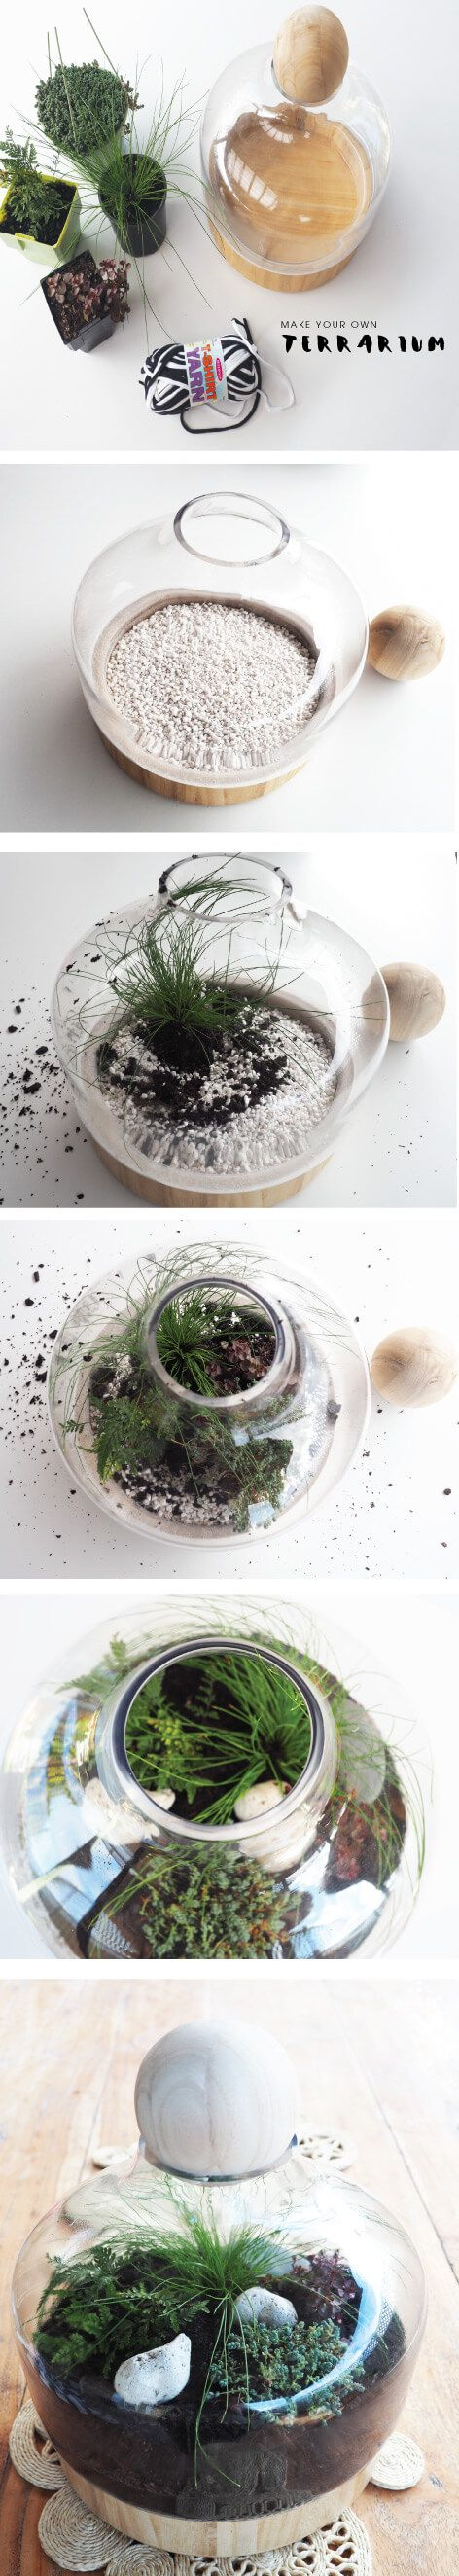 How to make your own terrarium and the plants I used. Super easy to make, takes 20 mins tops. Check out this blog for the details.